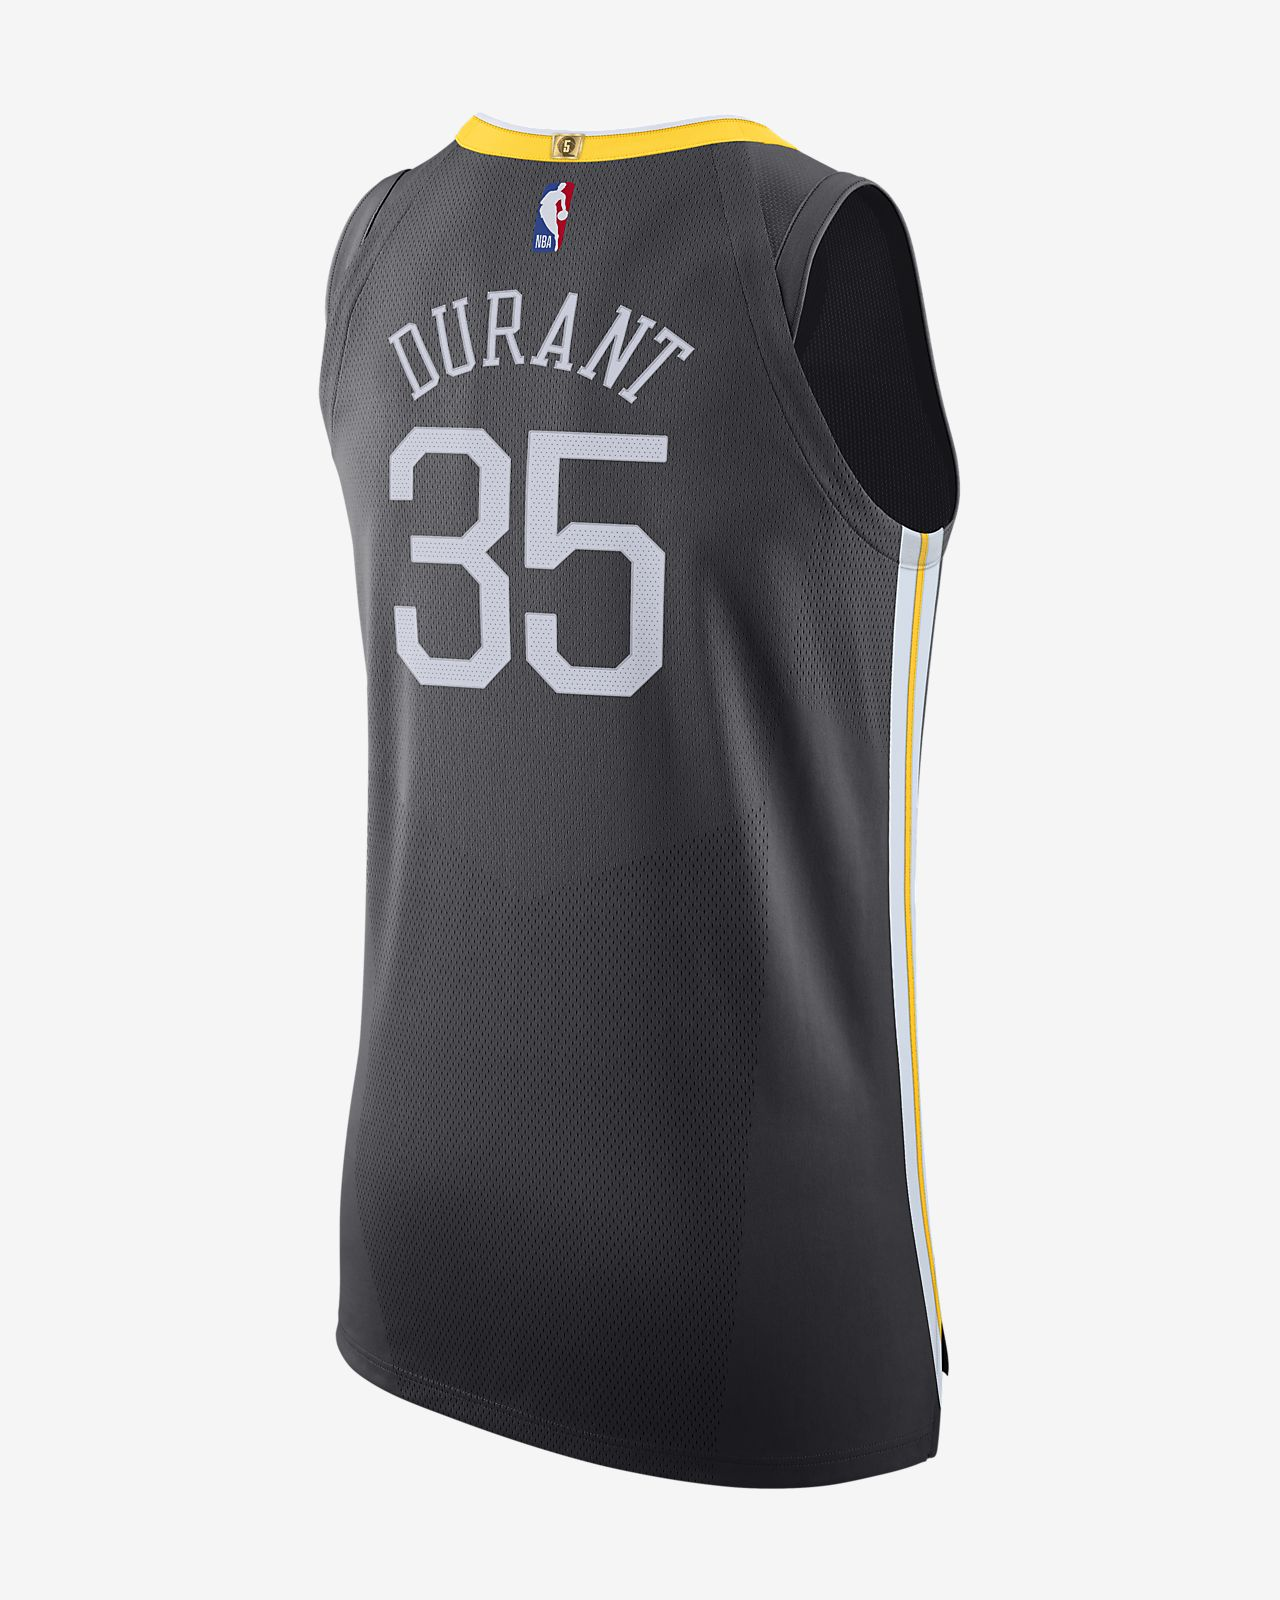 b7fc6c2f4 Men s Nike NBA Connected Jersey. Kevin Durant Statement Edition Authentic (Golden  State Warriors)